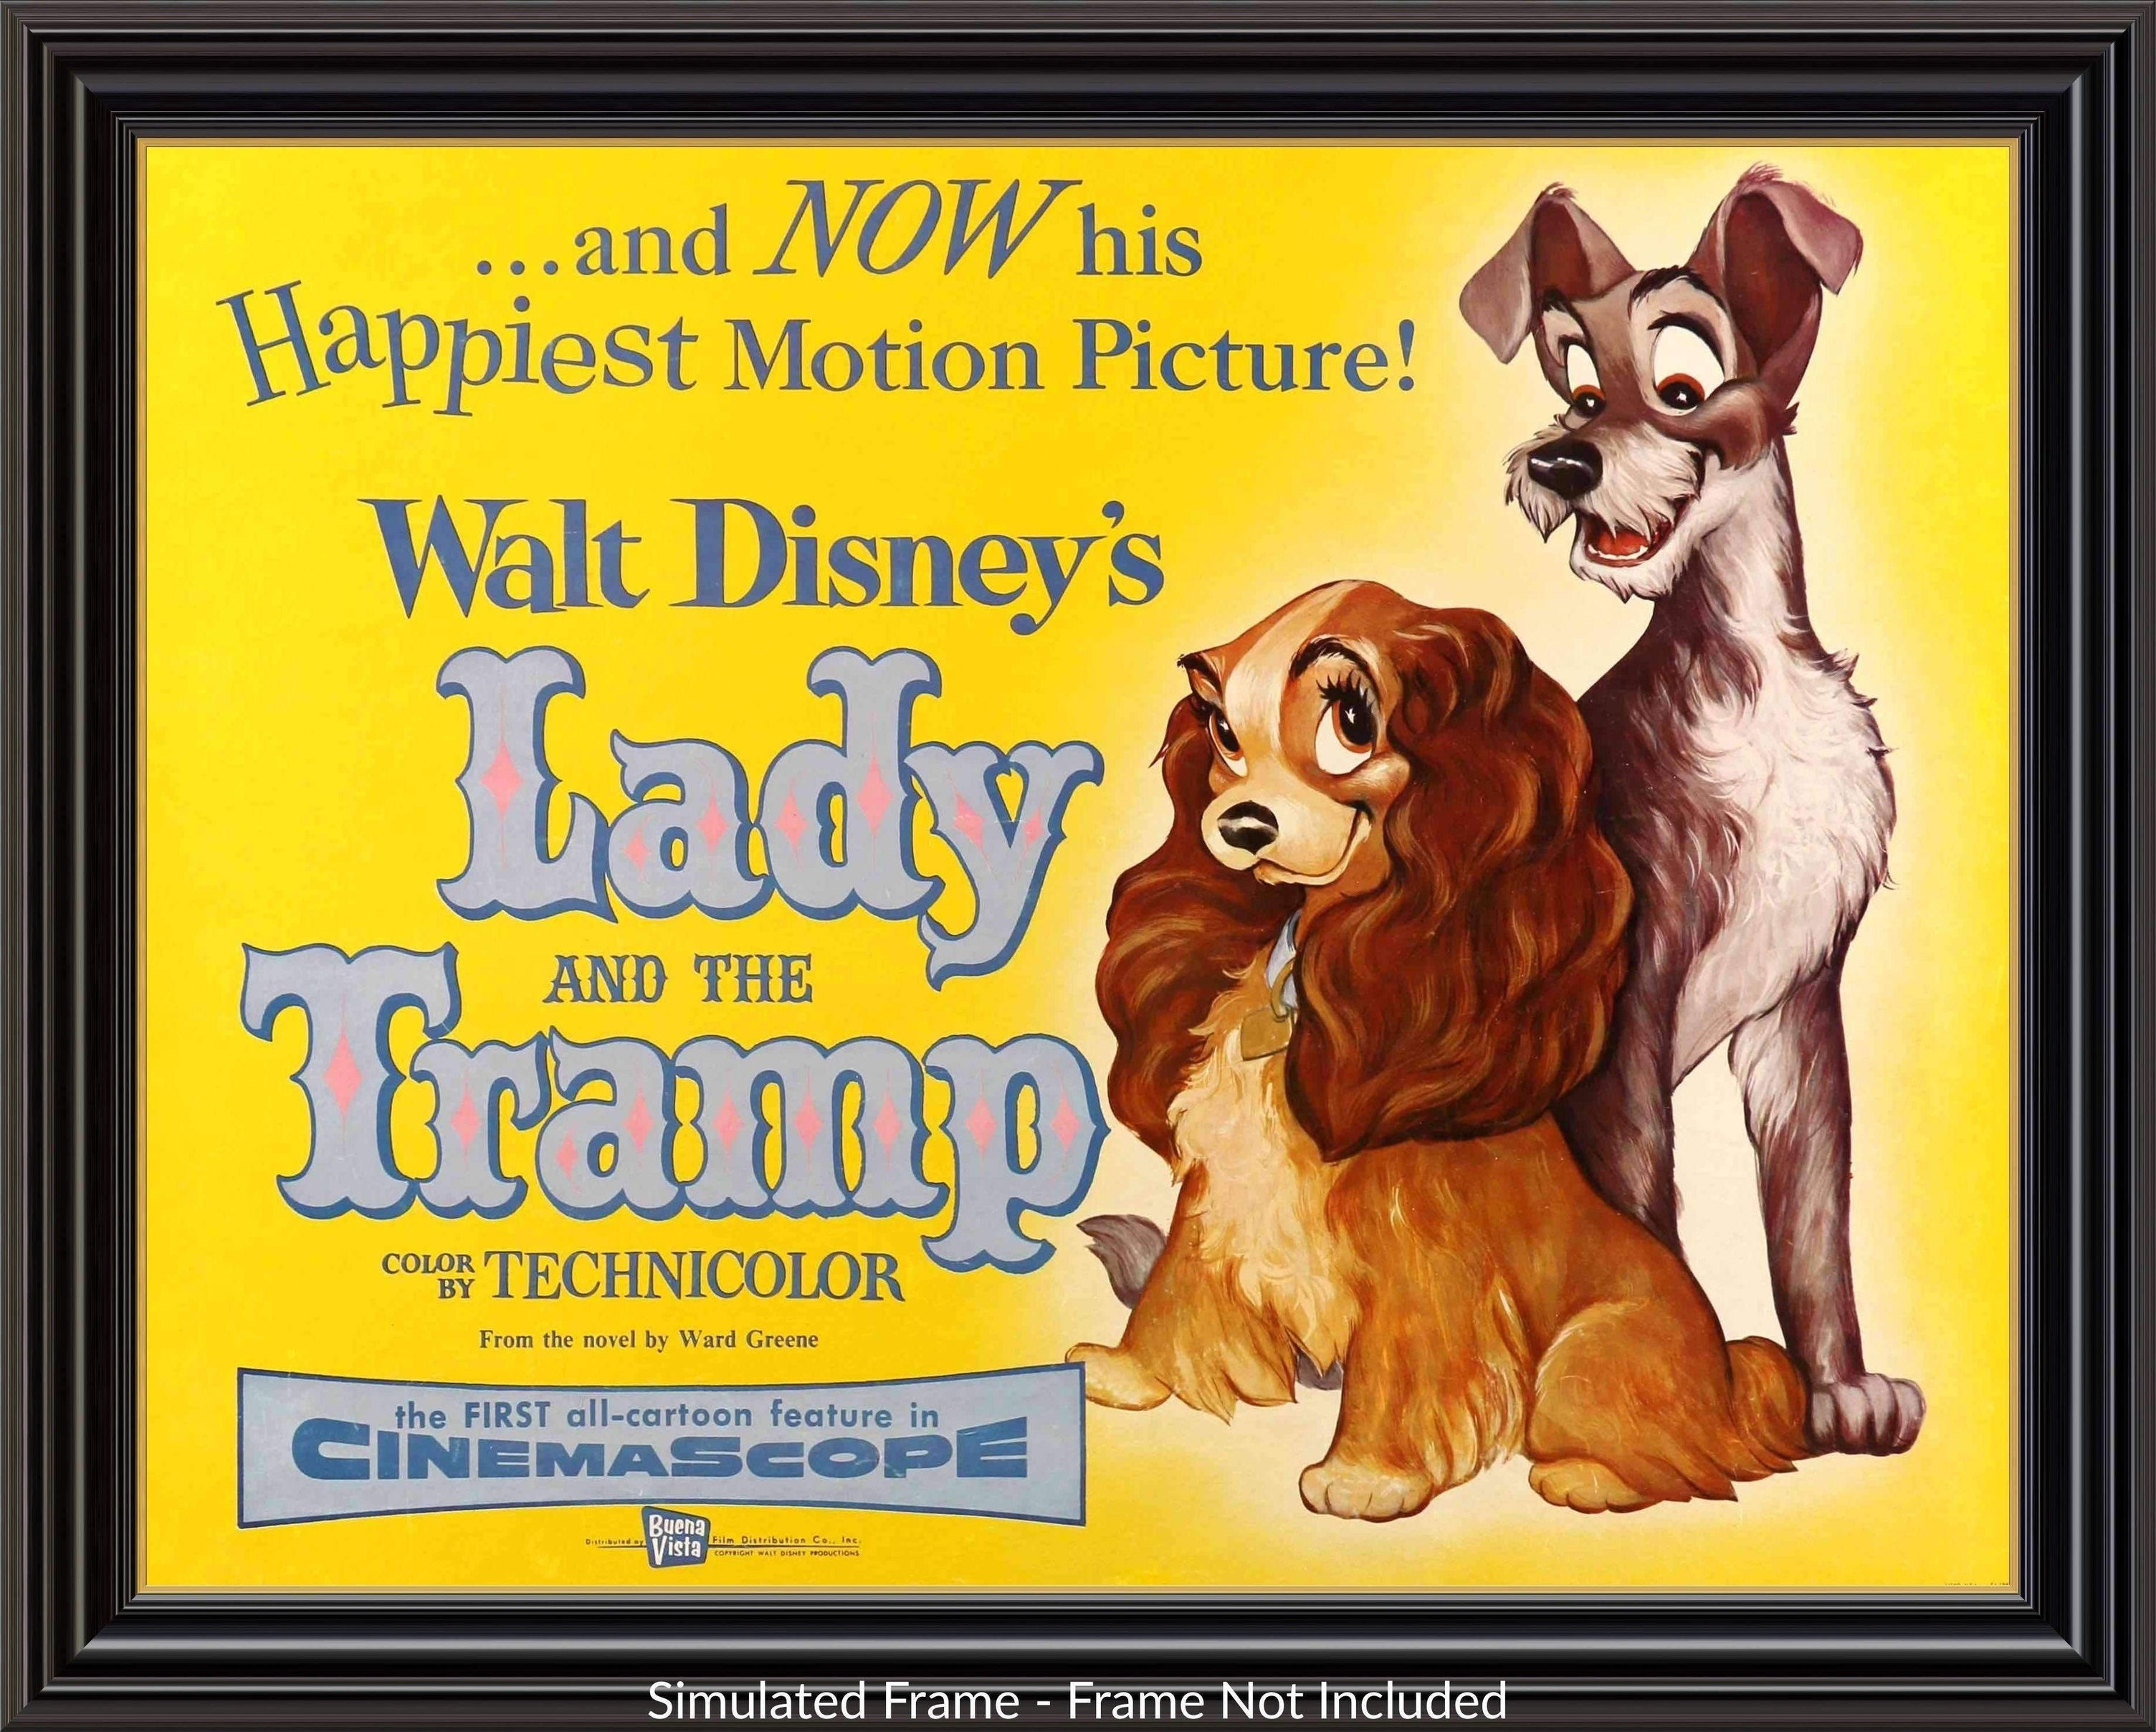 Lady And The Tramp 1955 Original Half Sheet Movie Poster 22 X 28 Original Film Art Vintage Movie Posters